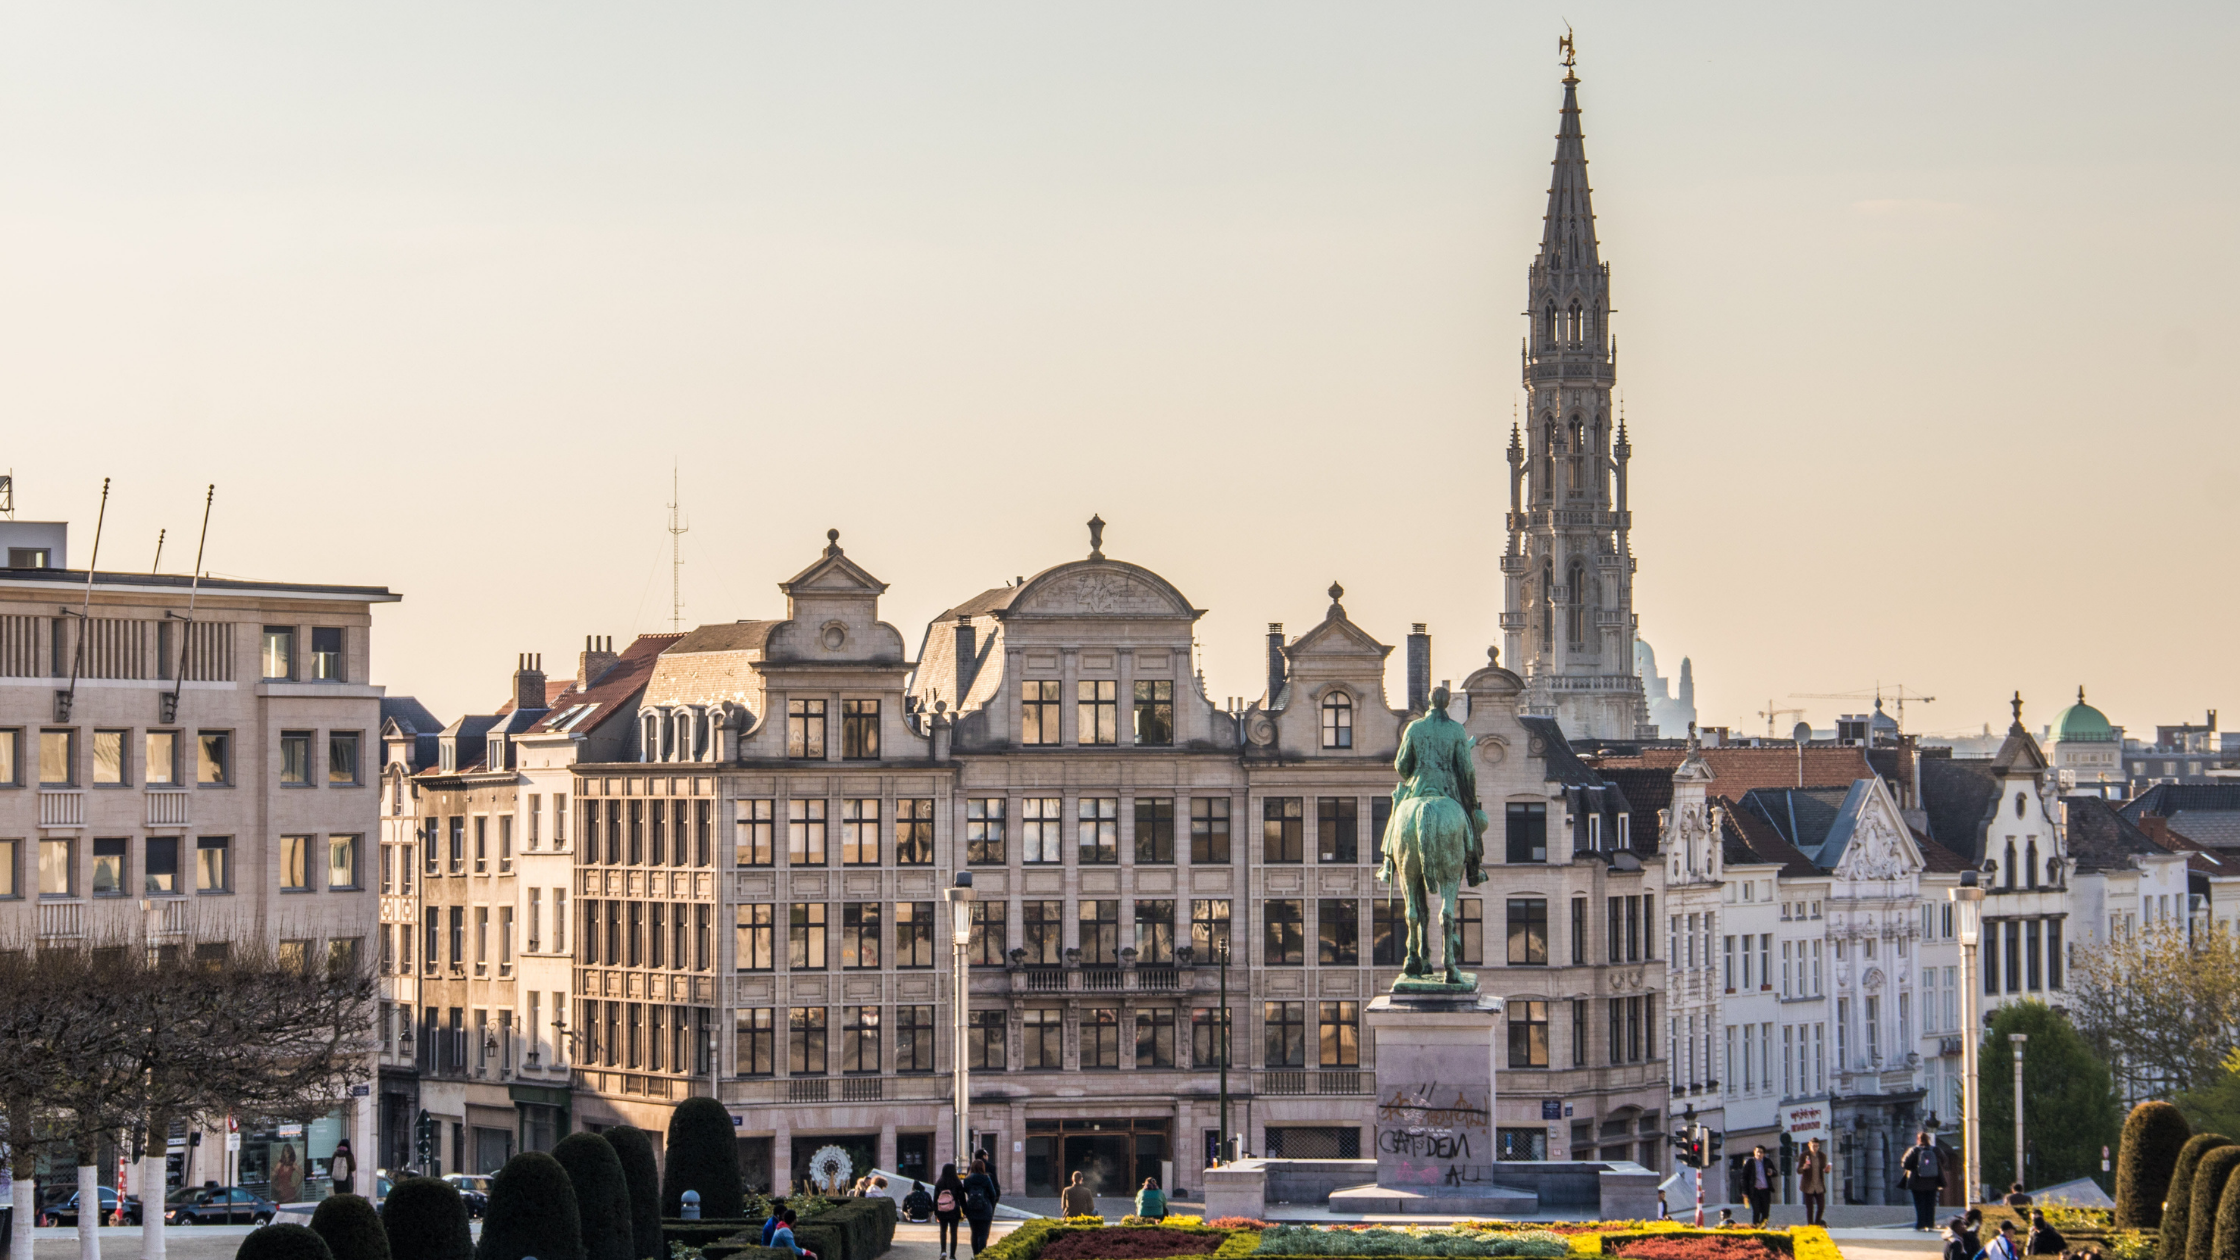 LifeX Brussels